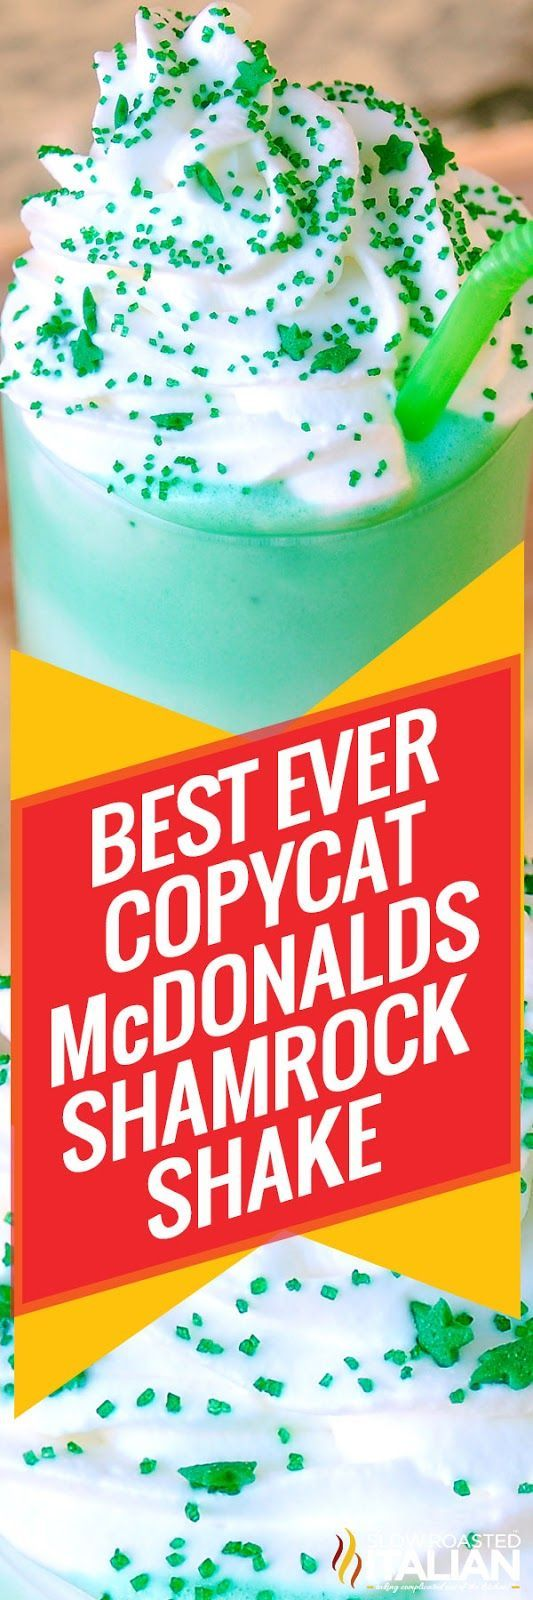 McDonald's Shamrock Shake Copycat recipe is a perfectly creamy mint shake topped with homemade whipped cream and sprinkles to make this a superb St. Patrick's Day shake. They're only seasonally available at McDonald's, but now with this easy recipe you can have one anytime. Simple and so delicious you may never have to buy one again!